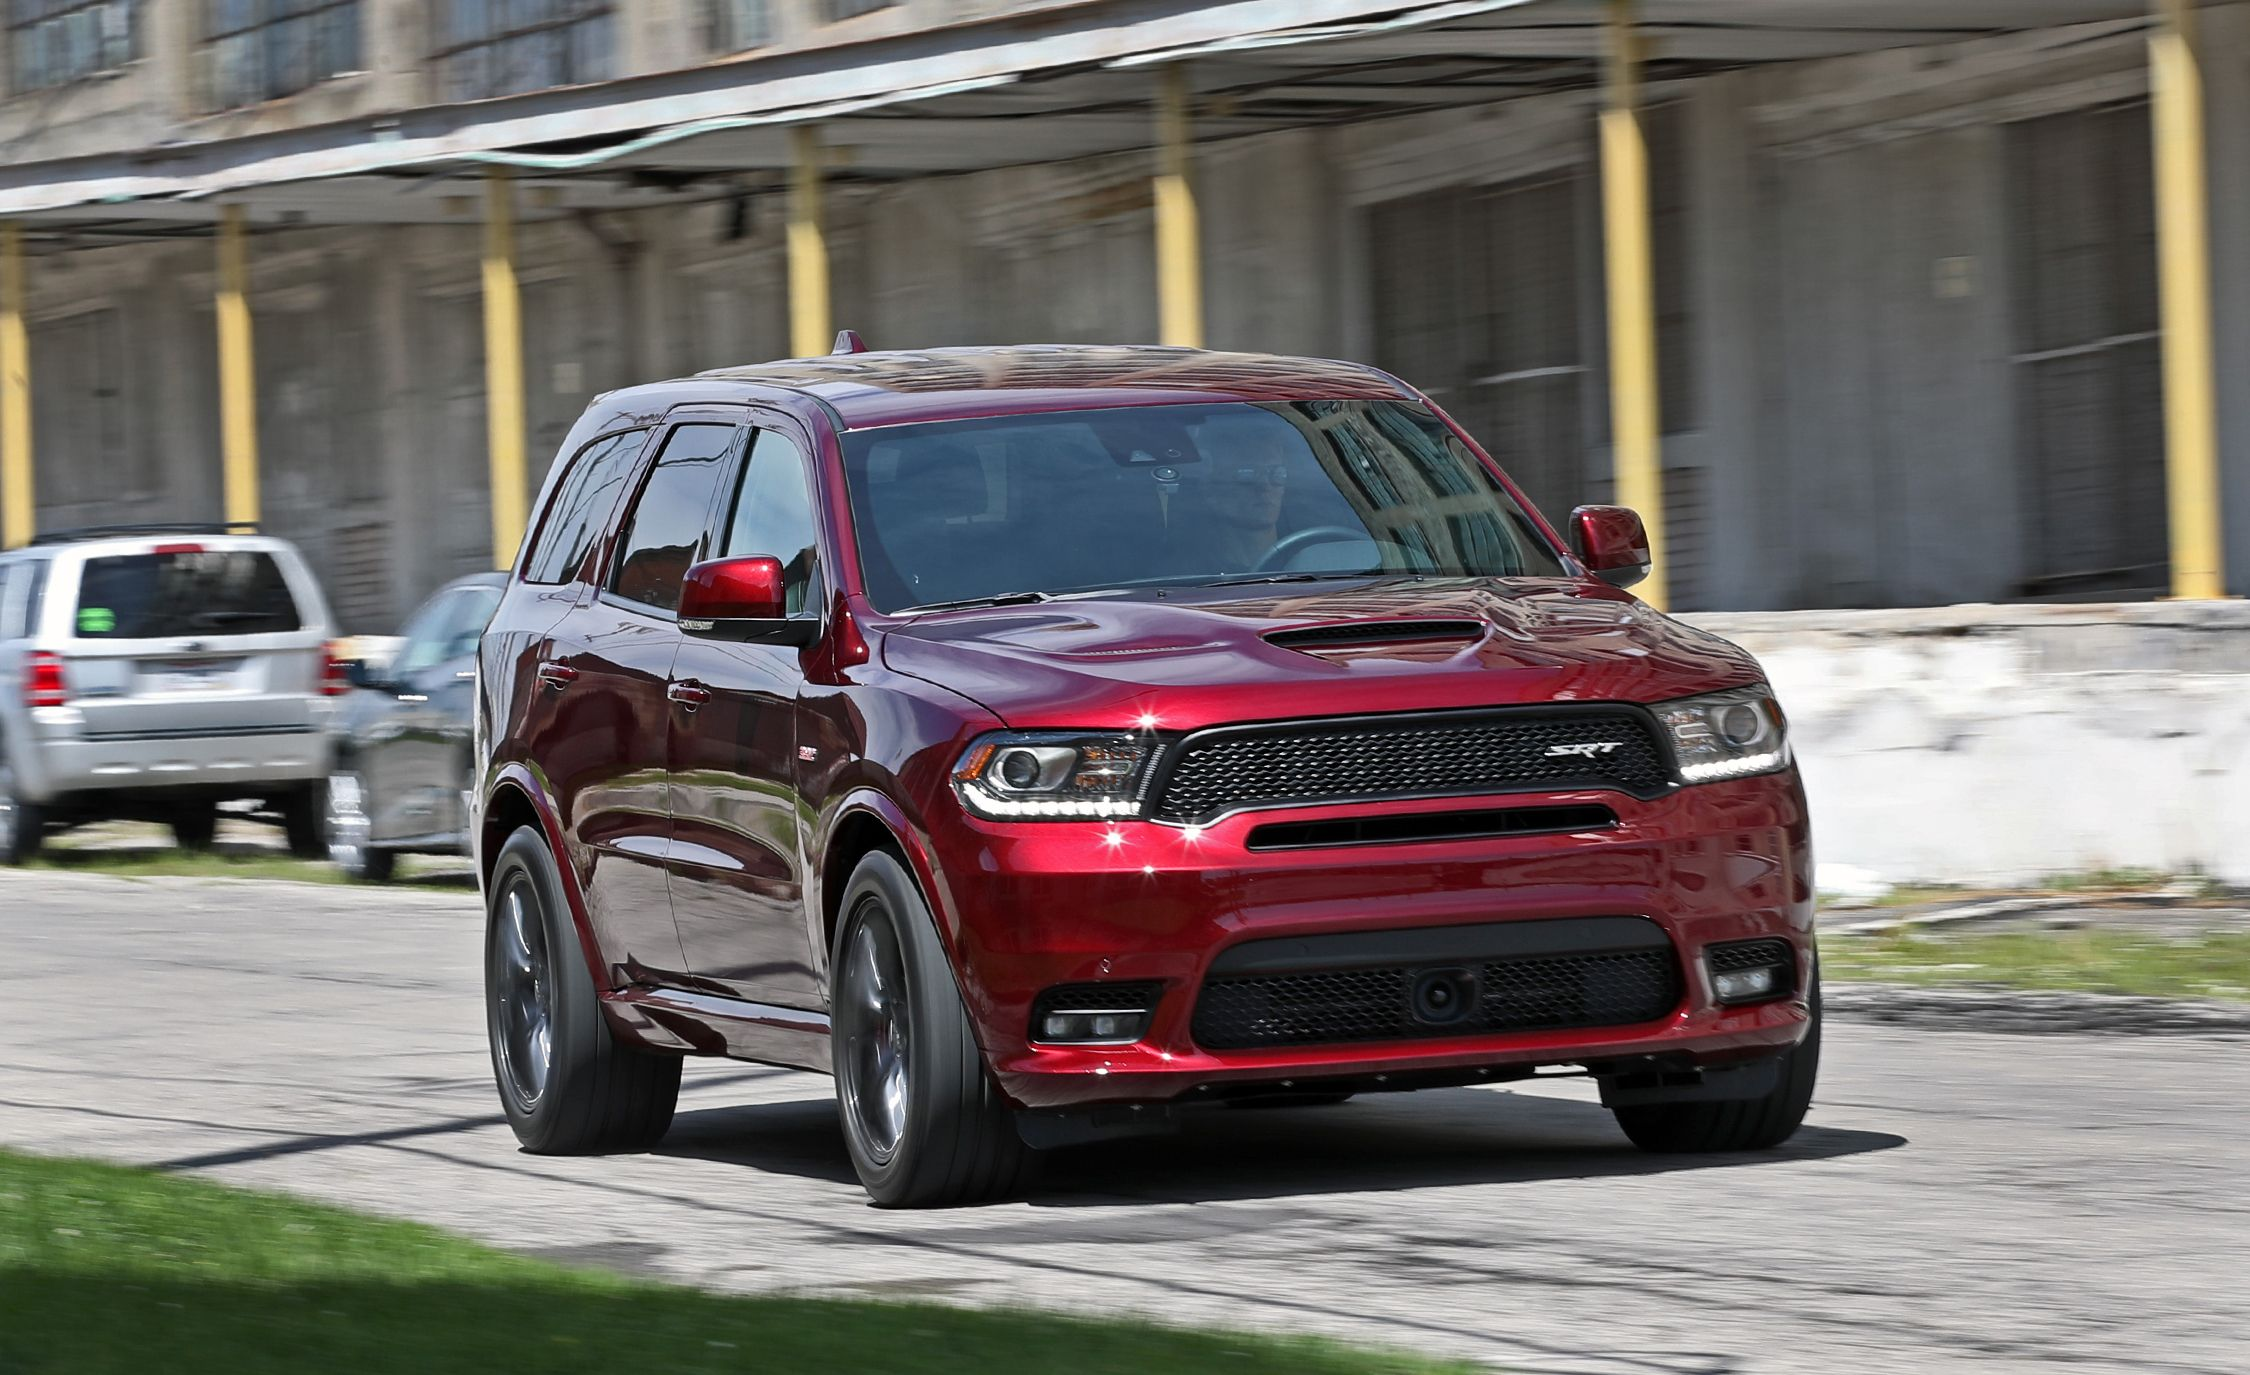 2018 dodge durango srt video review car and driver. Black Bedroom Furniture Sets. Home Design Ideas